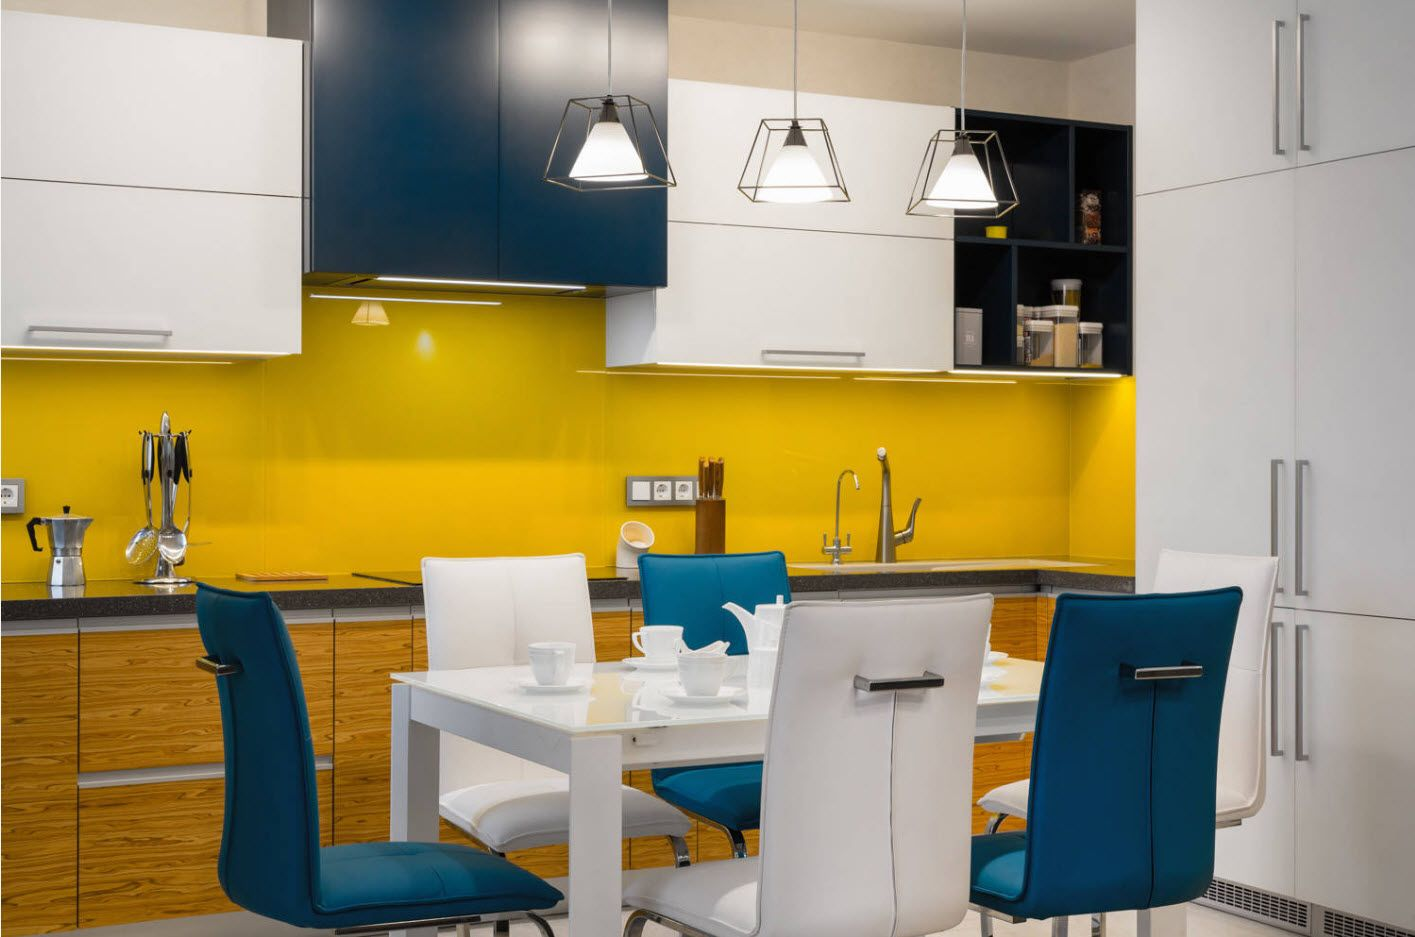 Yellow backsplash of the deep blue kitchen set and blue chairs at the modern cottage